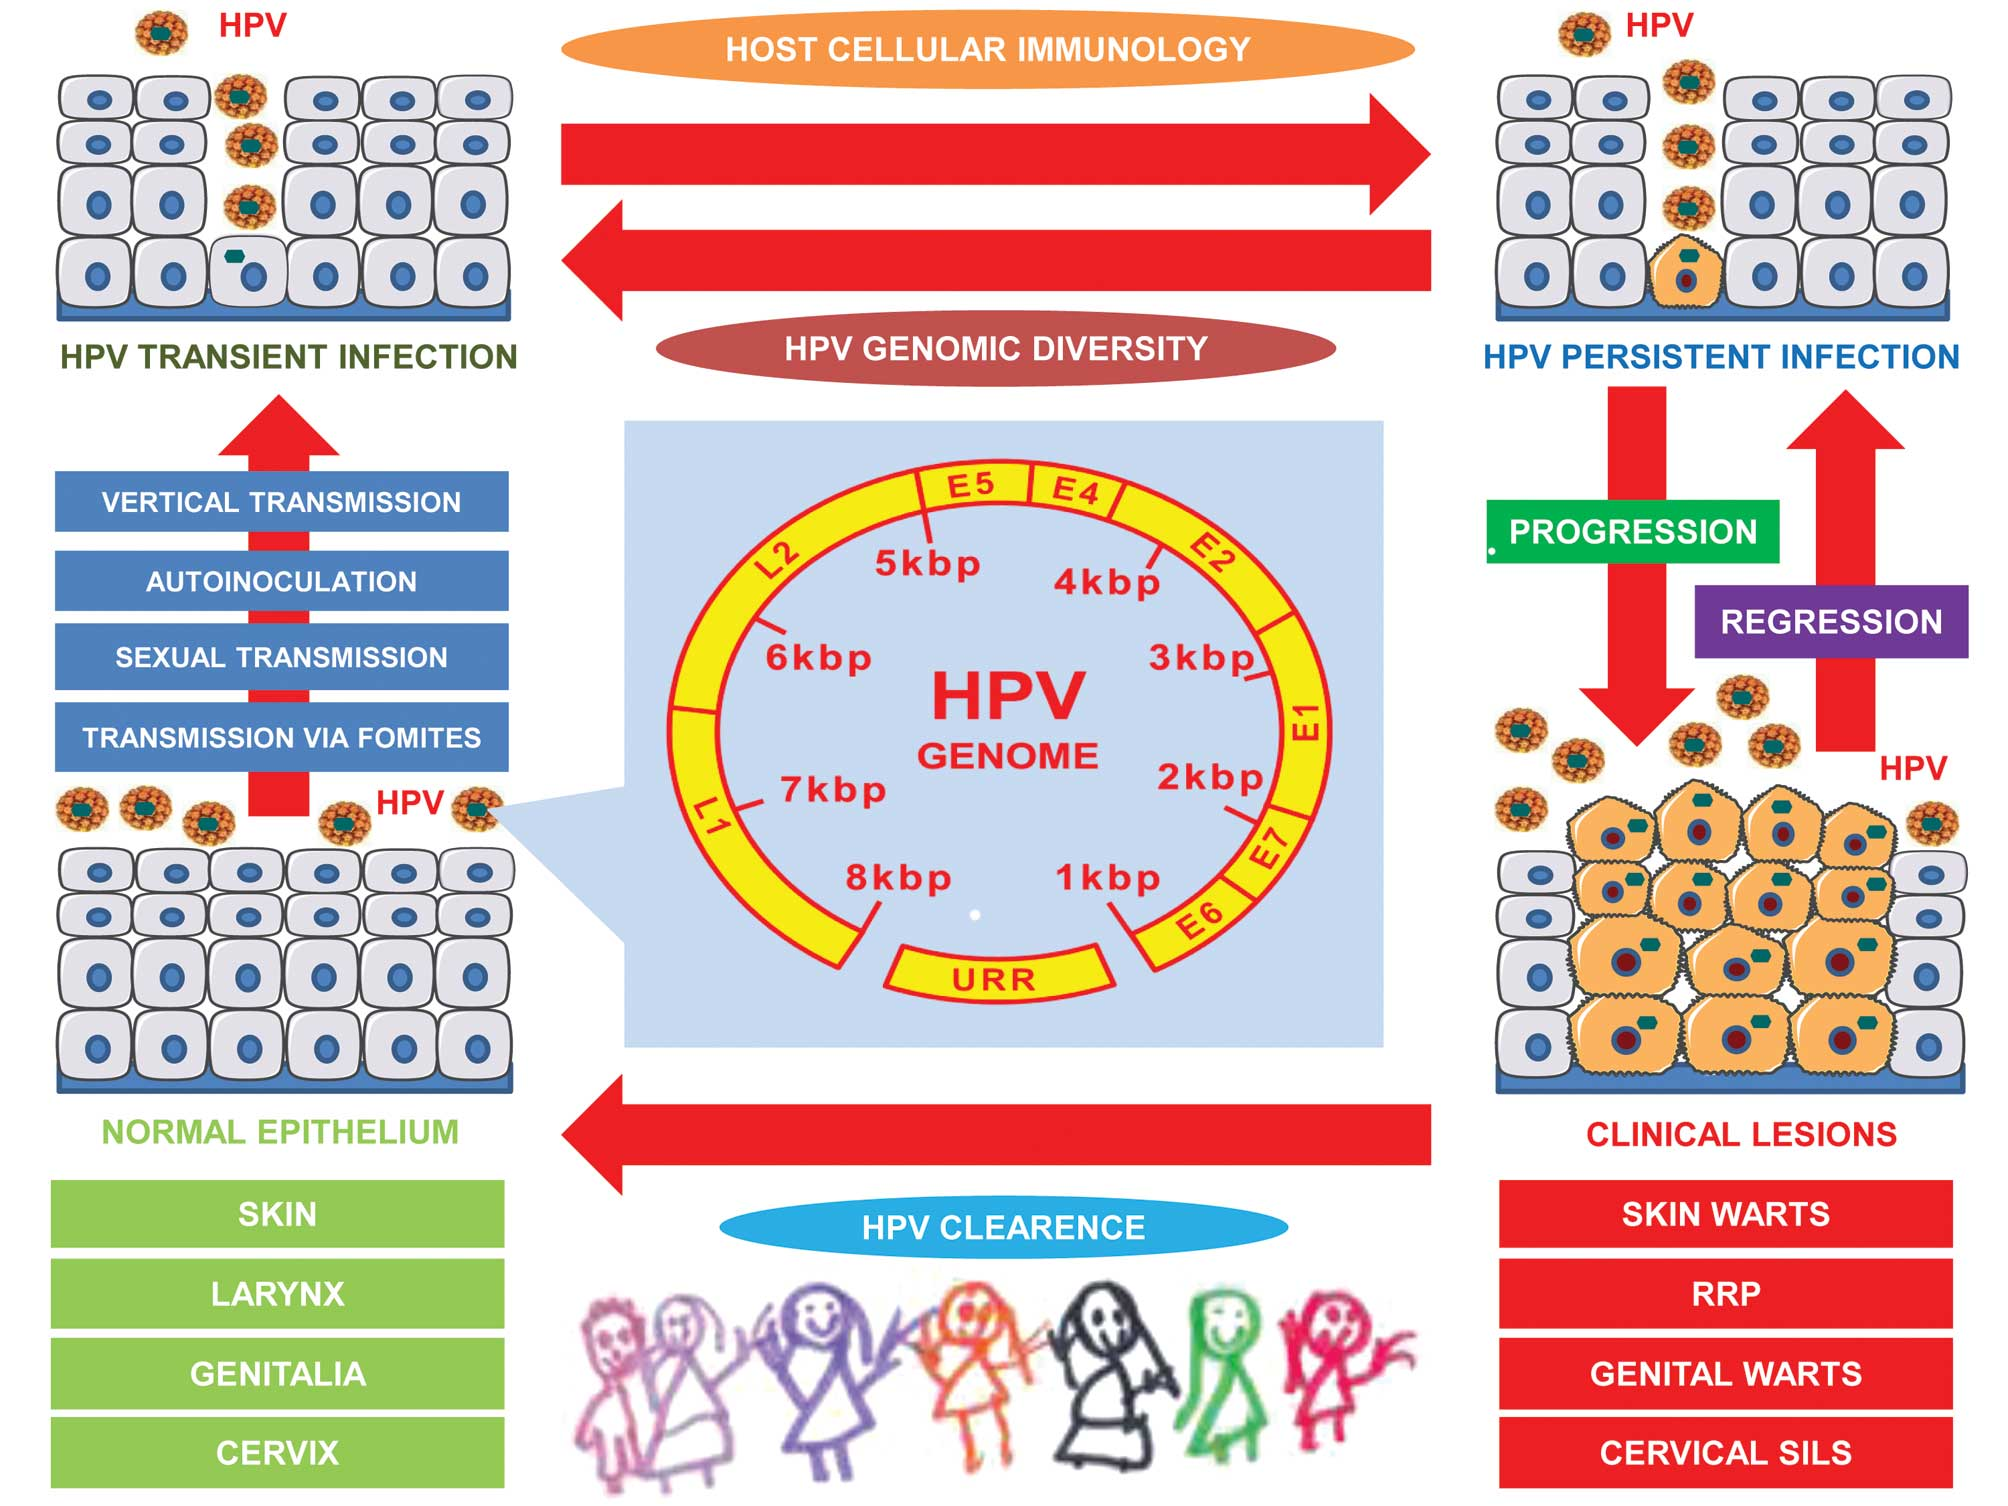 Hpv infection and cervical disease a review - Hpv and cancer review